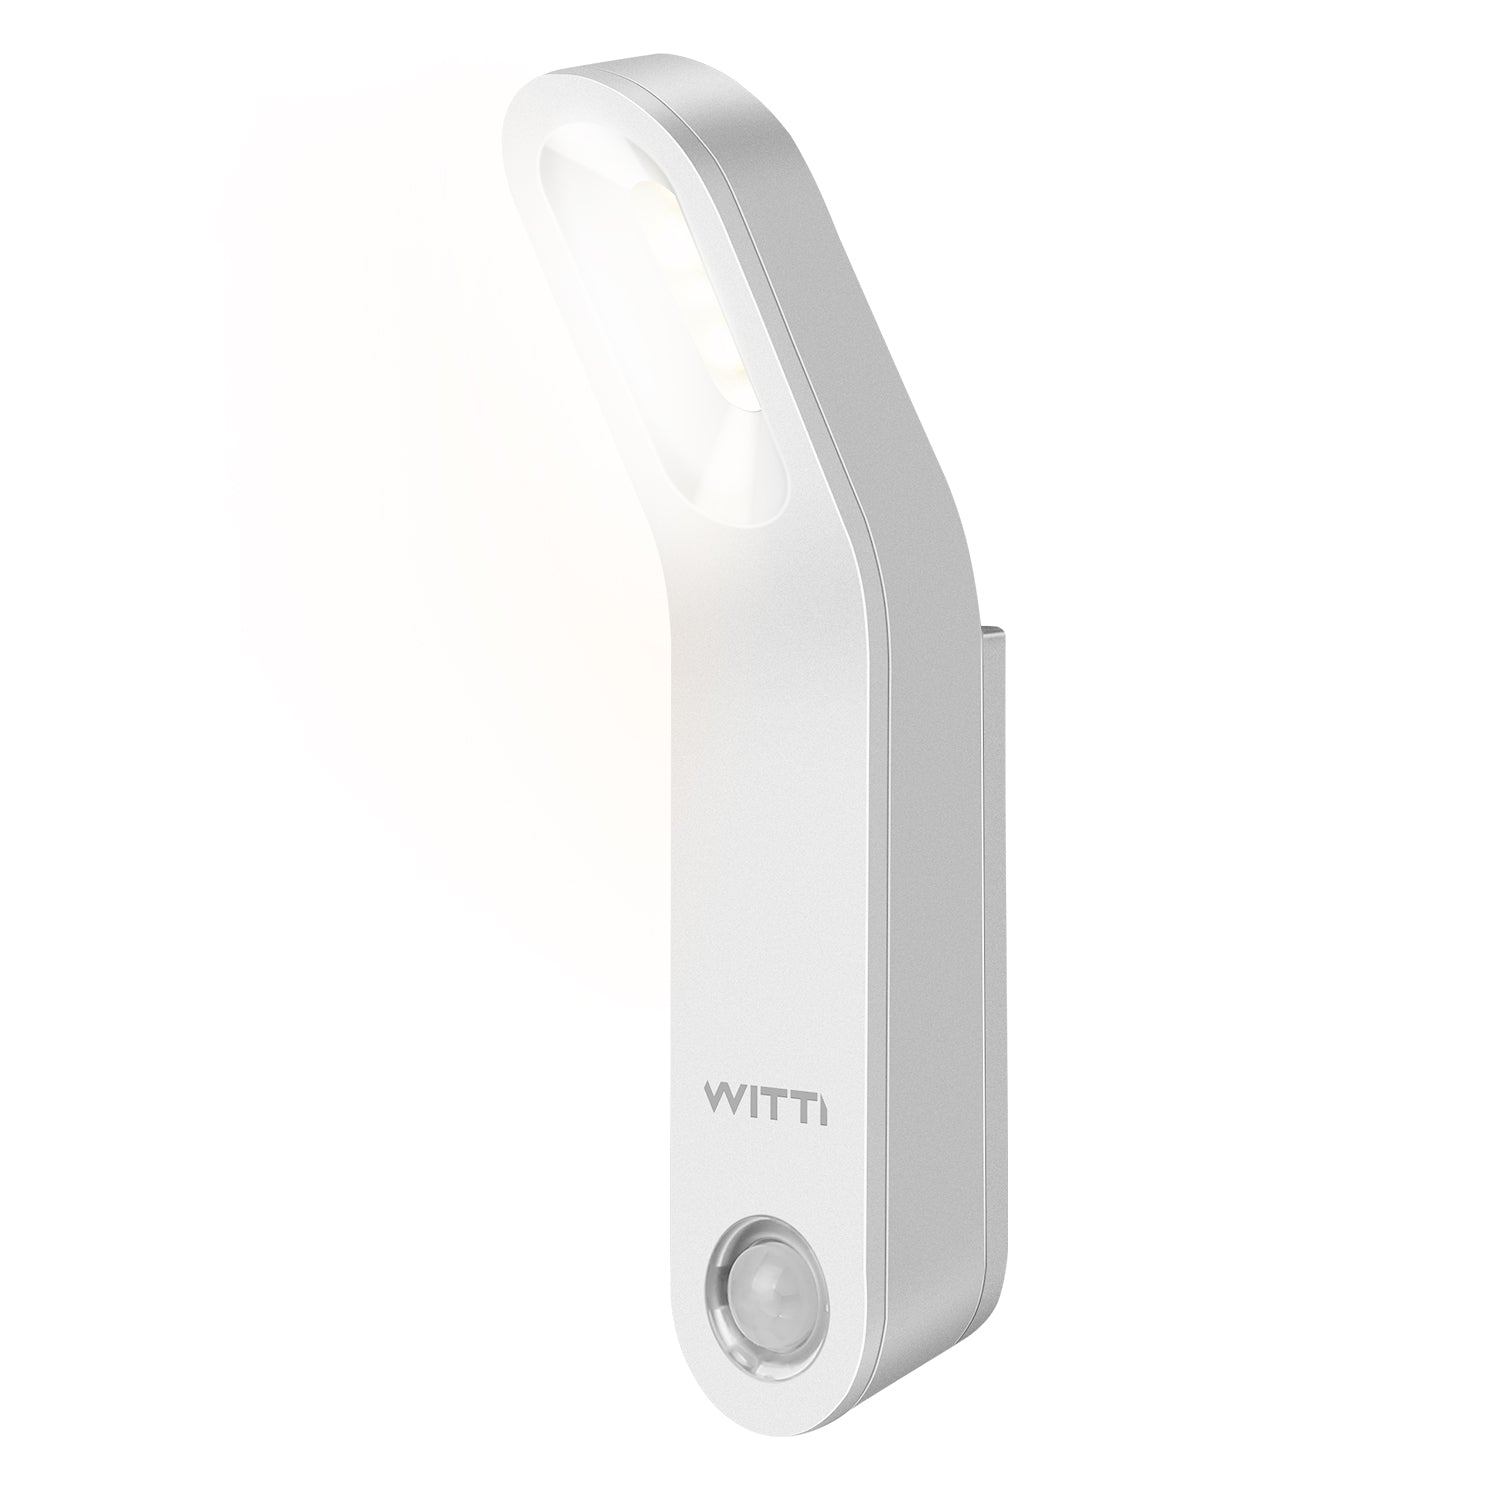 HANDI - Portable Night Light with Motion sensor